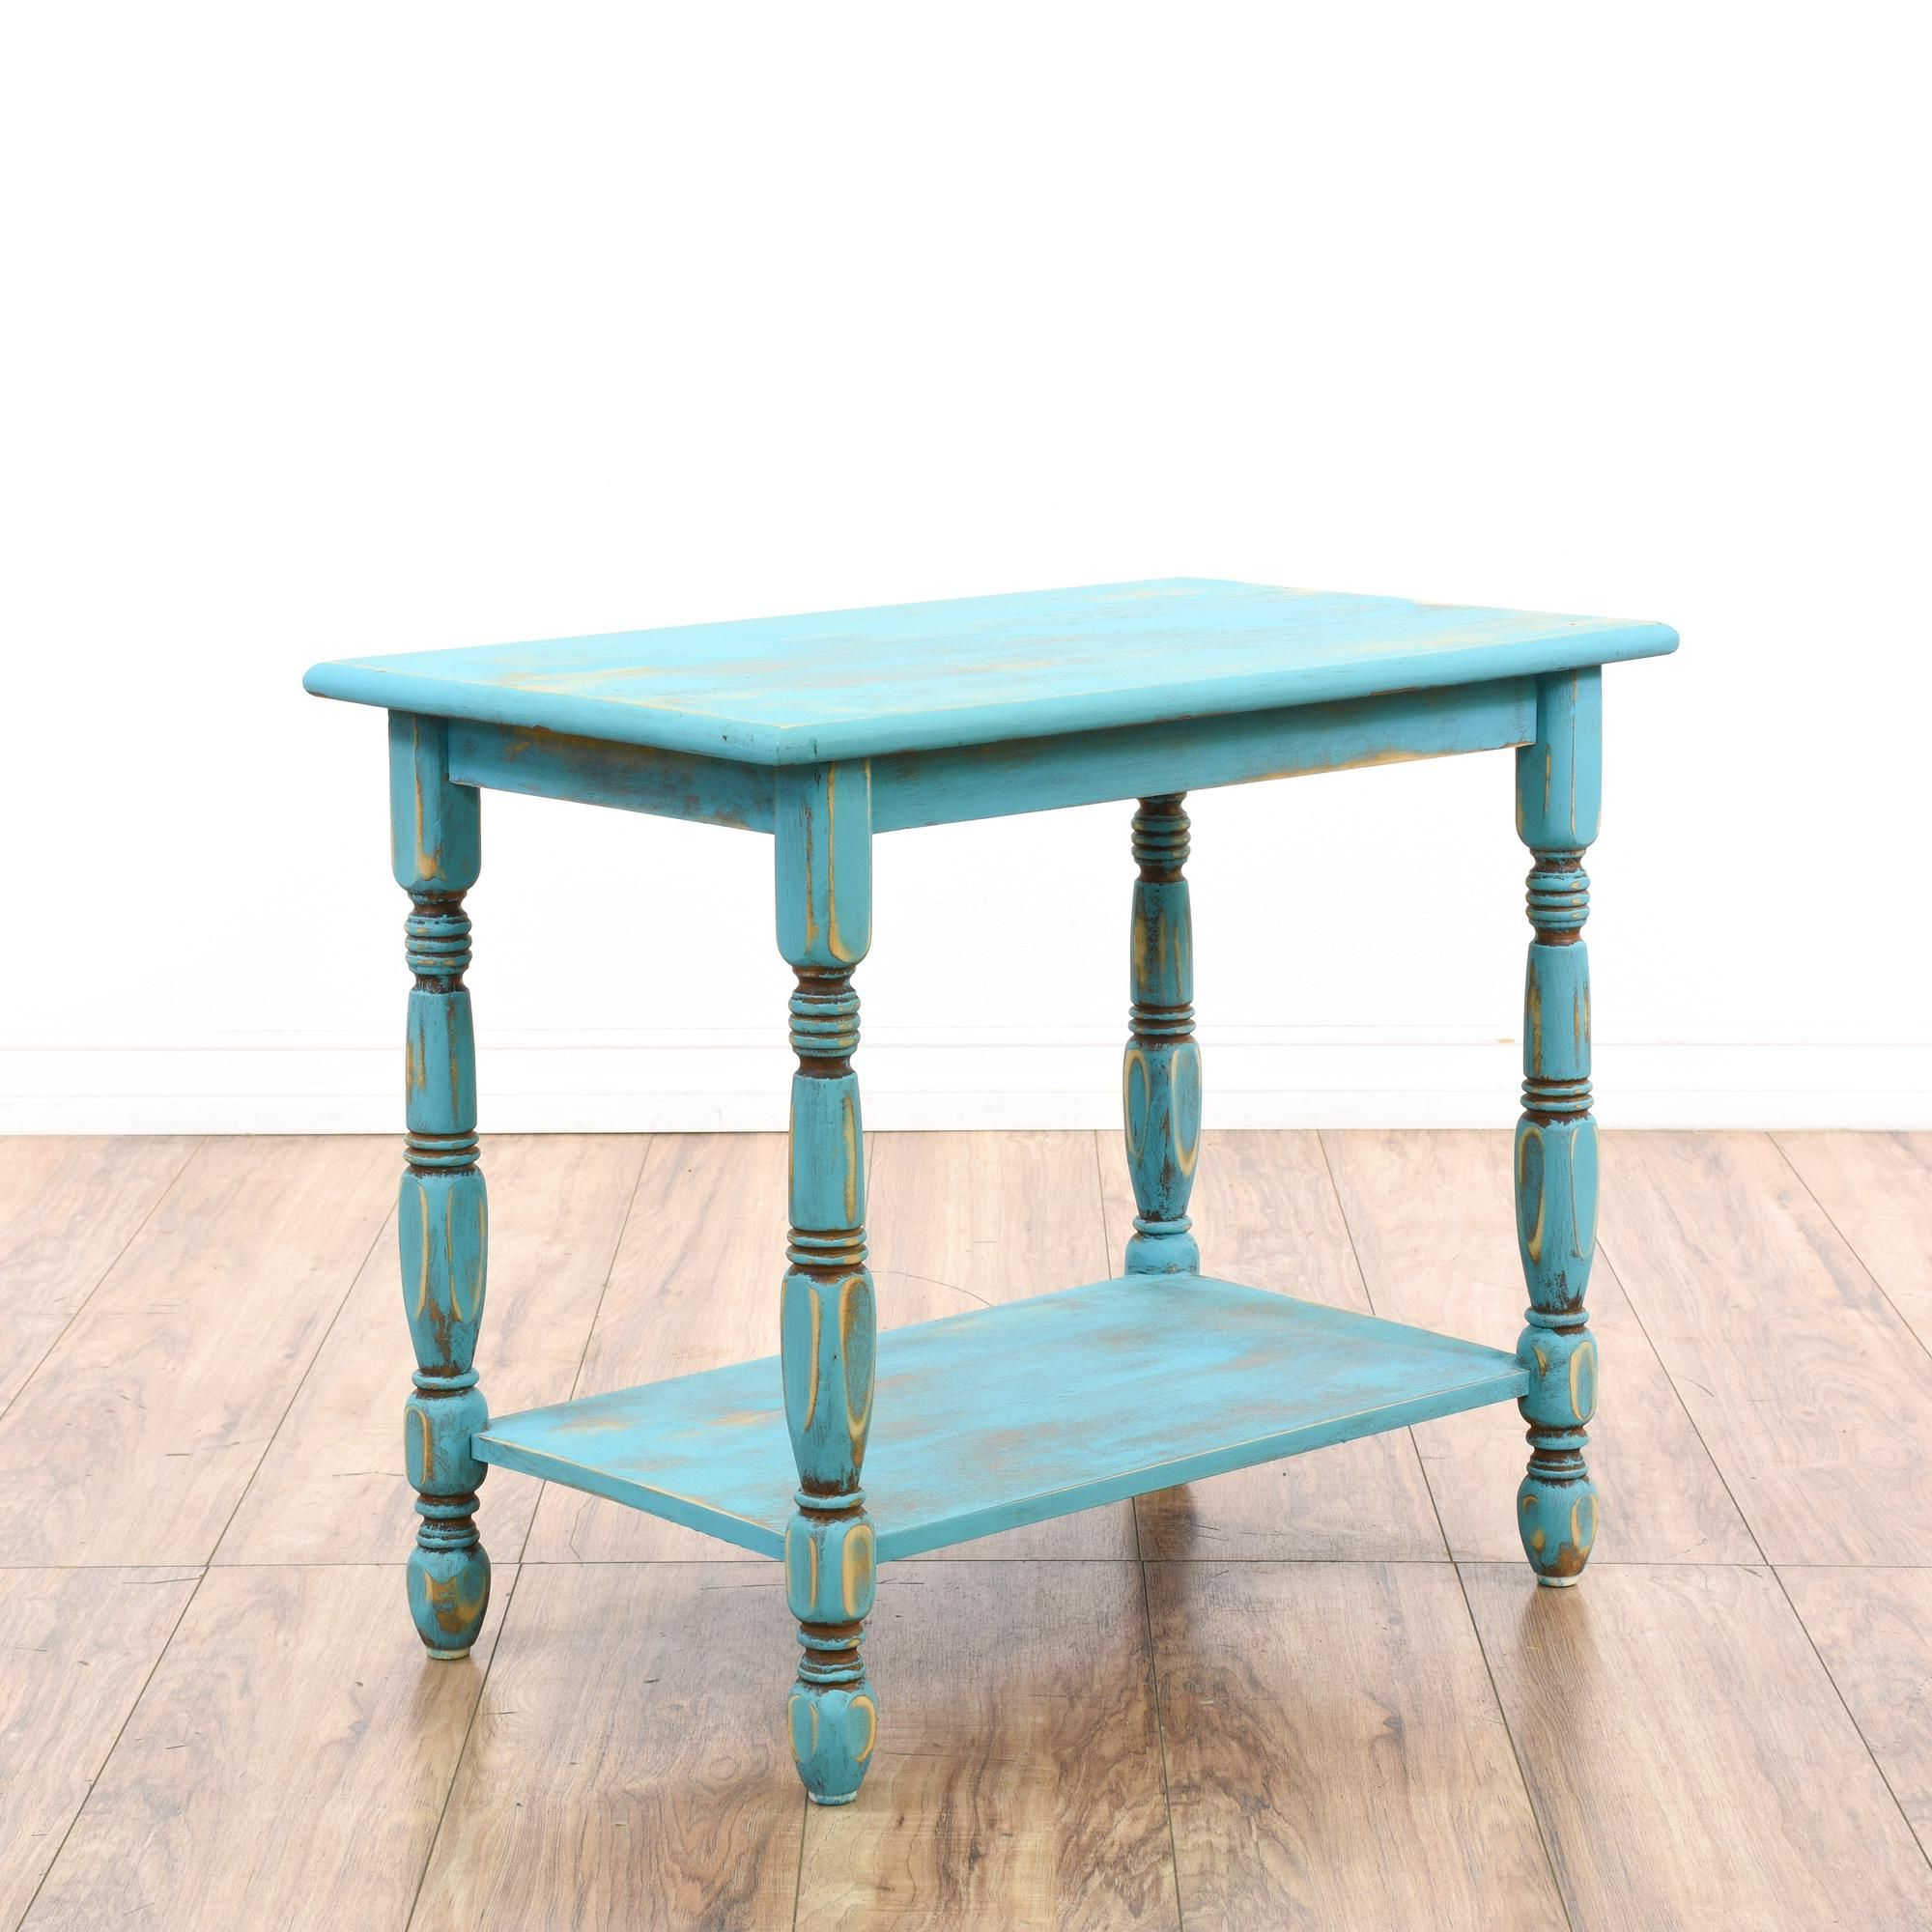 This shabby chic end table is featured in a solid wood with a